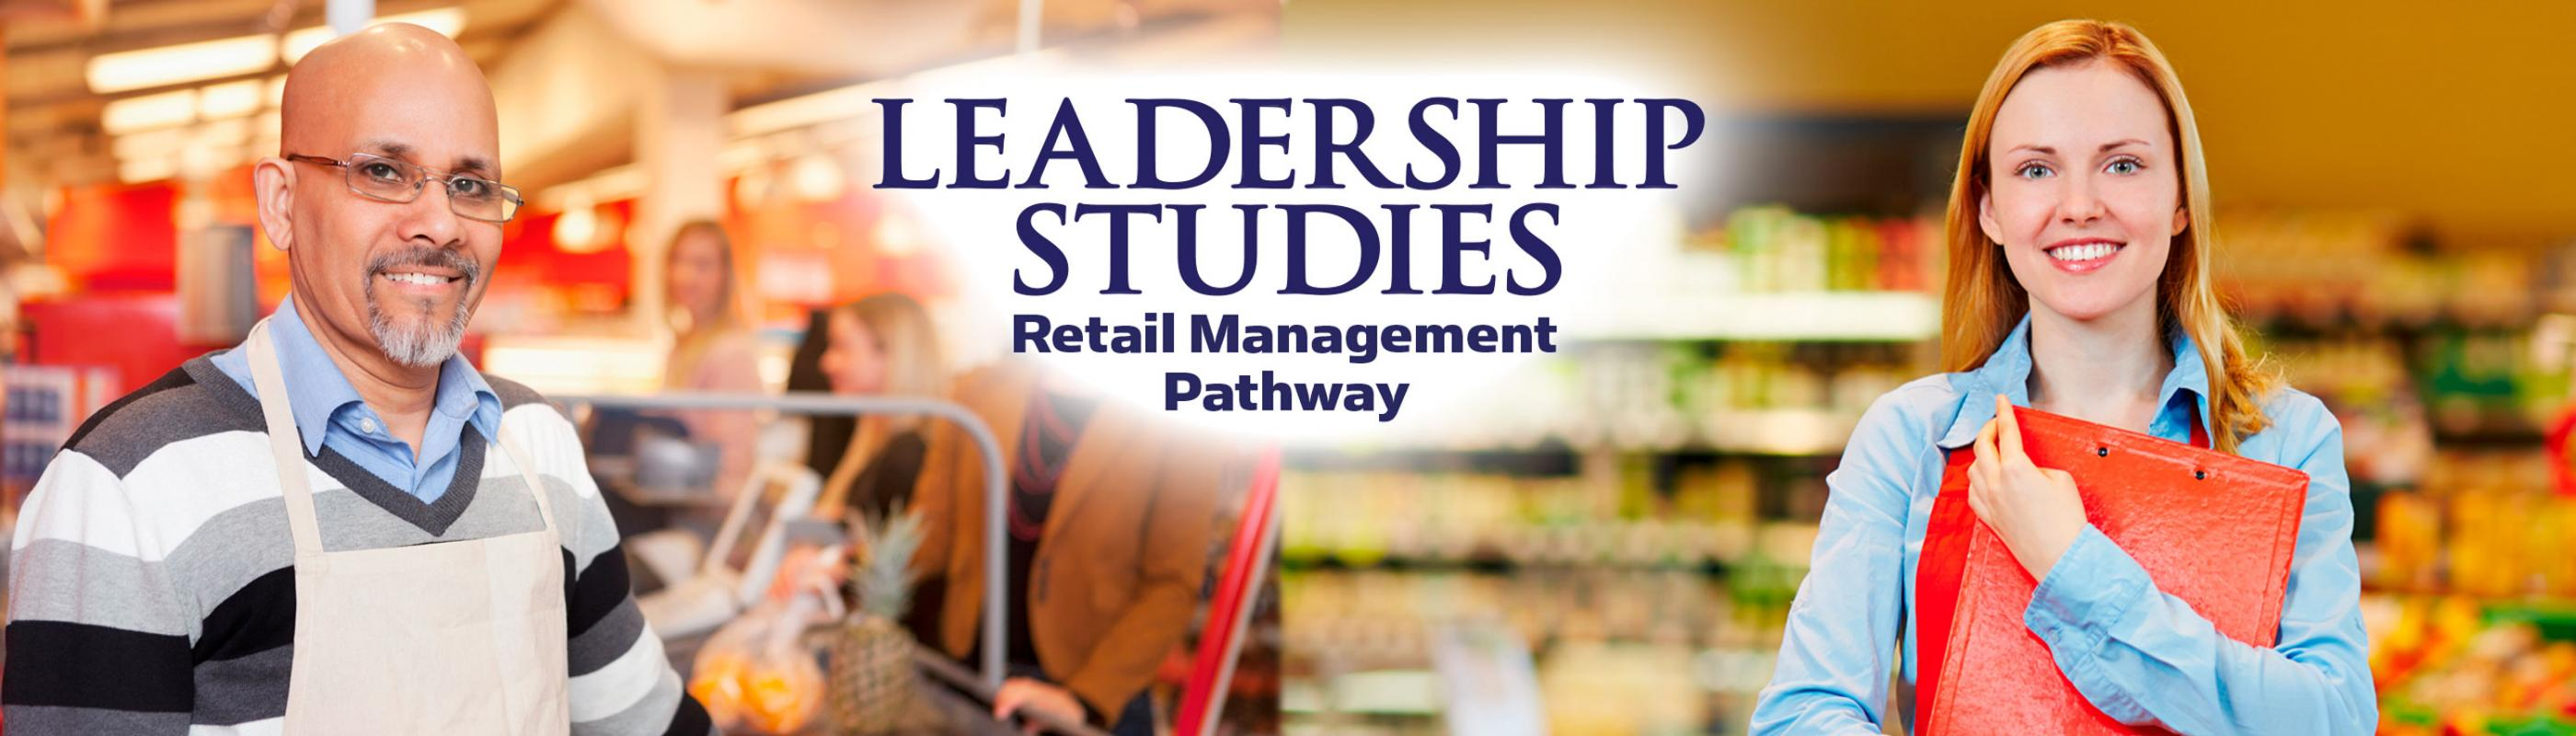 Leadership Studies Retail Management Certificate Pathway